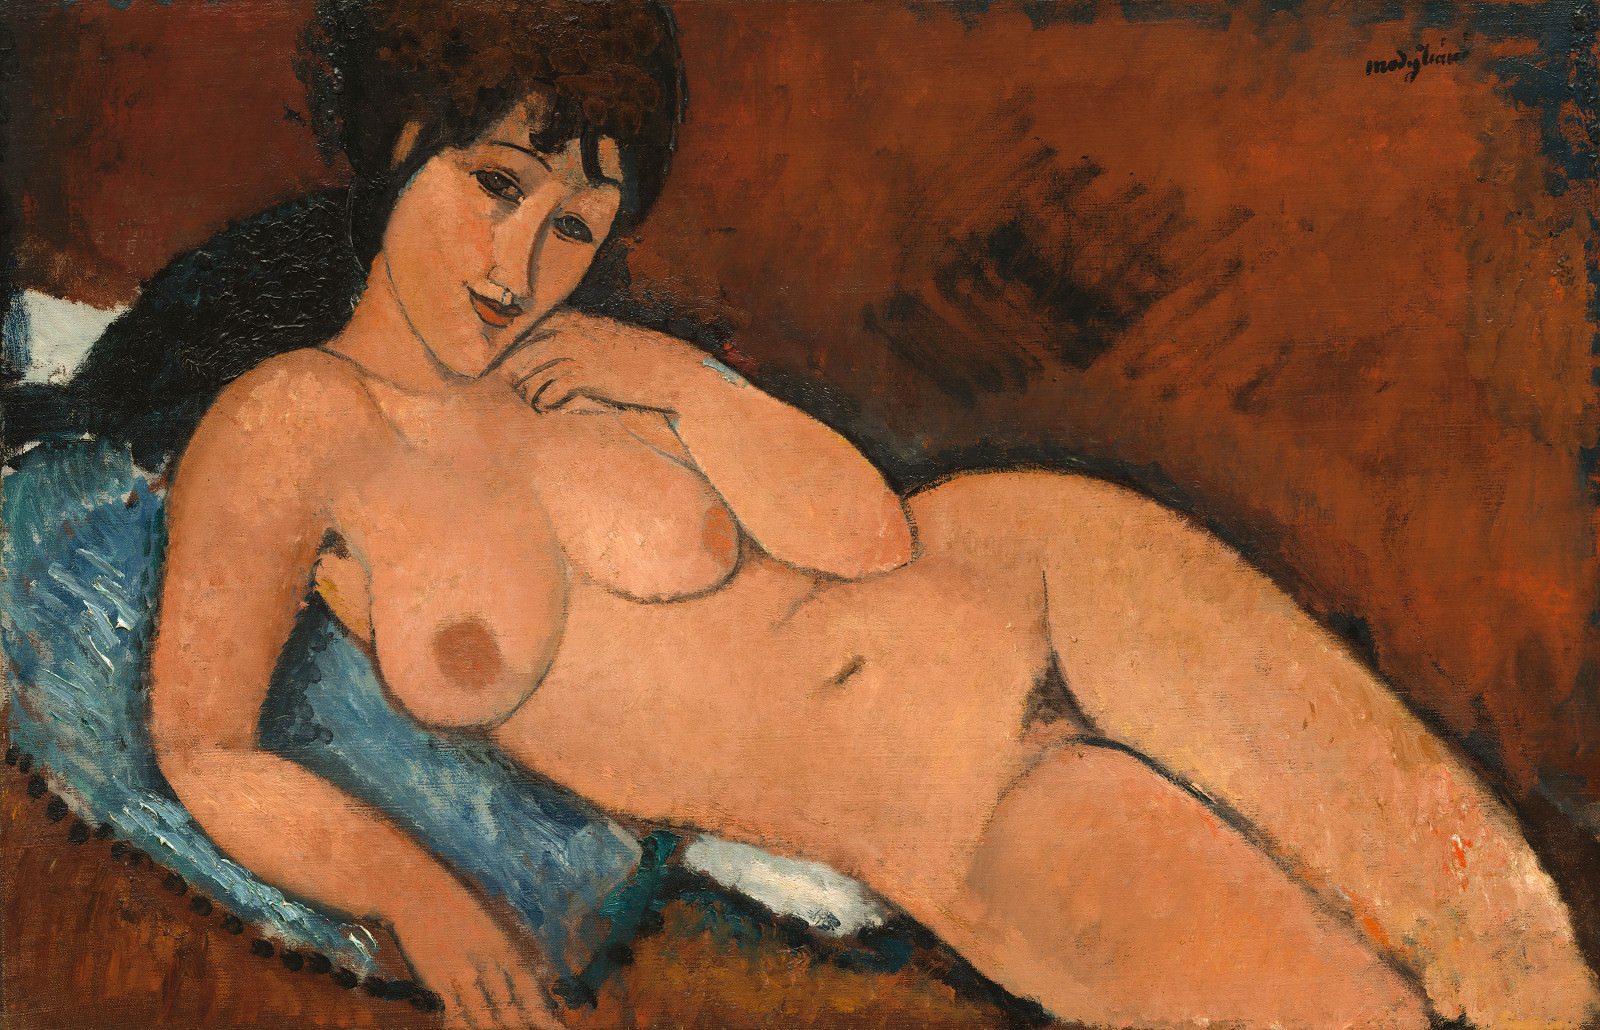 Fig. 9 - Desnudo en el amortiguador azul, Amedeo Modigliani, 1917, El aceite de linaza en, 65.4 x 100.9 cm. National Gallery of Art, Washington. Colección de Chester Dale.